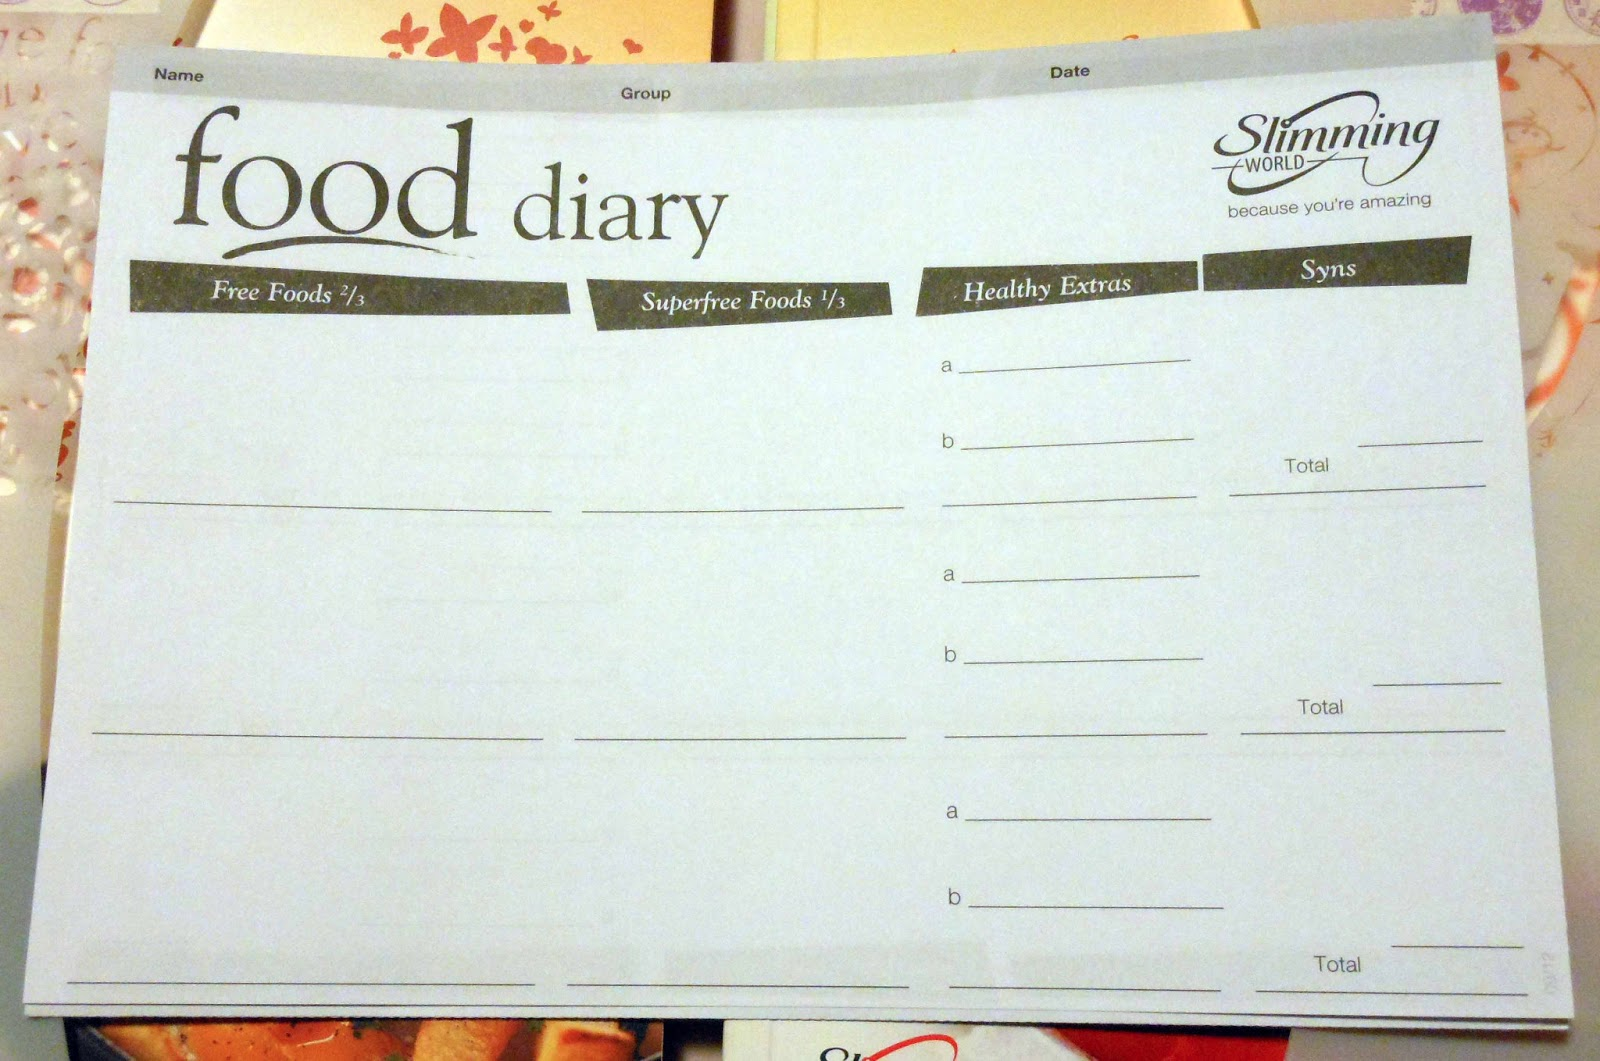 Slimming World Daily Diary